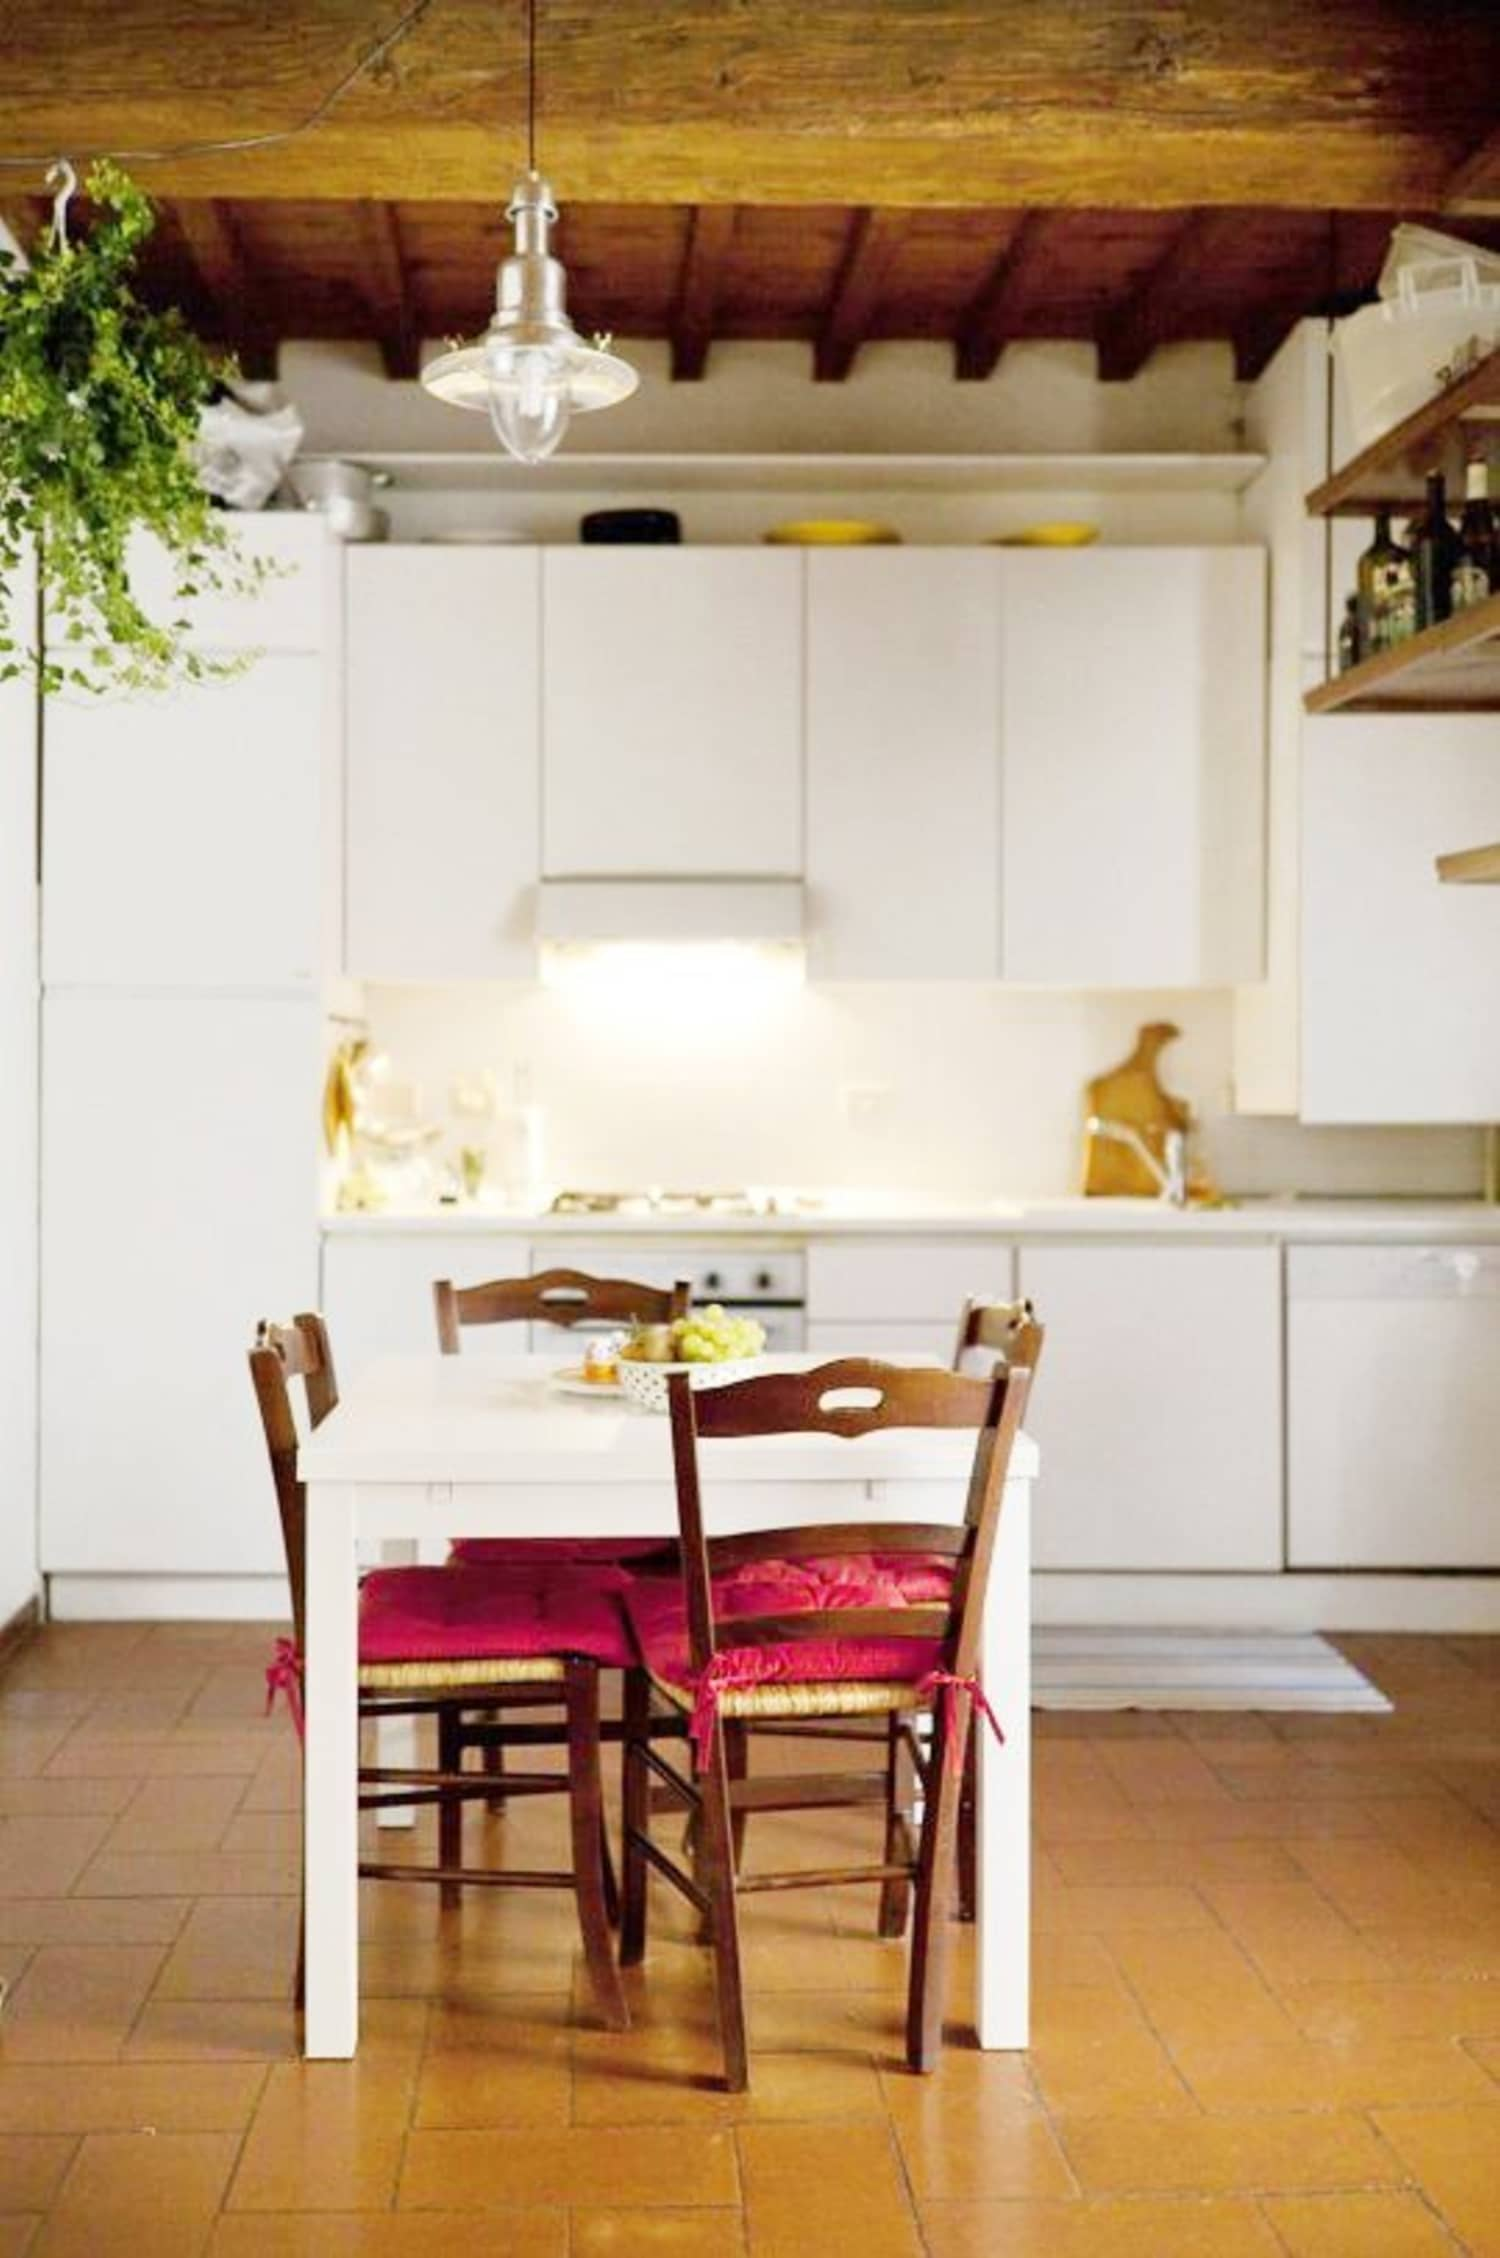 Clean As You Go And Other Smart Simple Kitchen Cleaning Tips Apartment Therapy